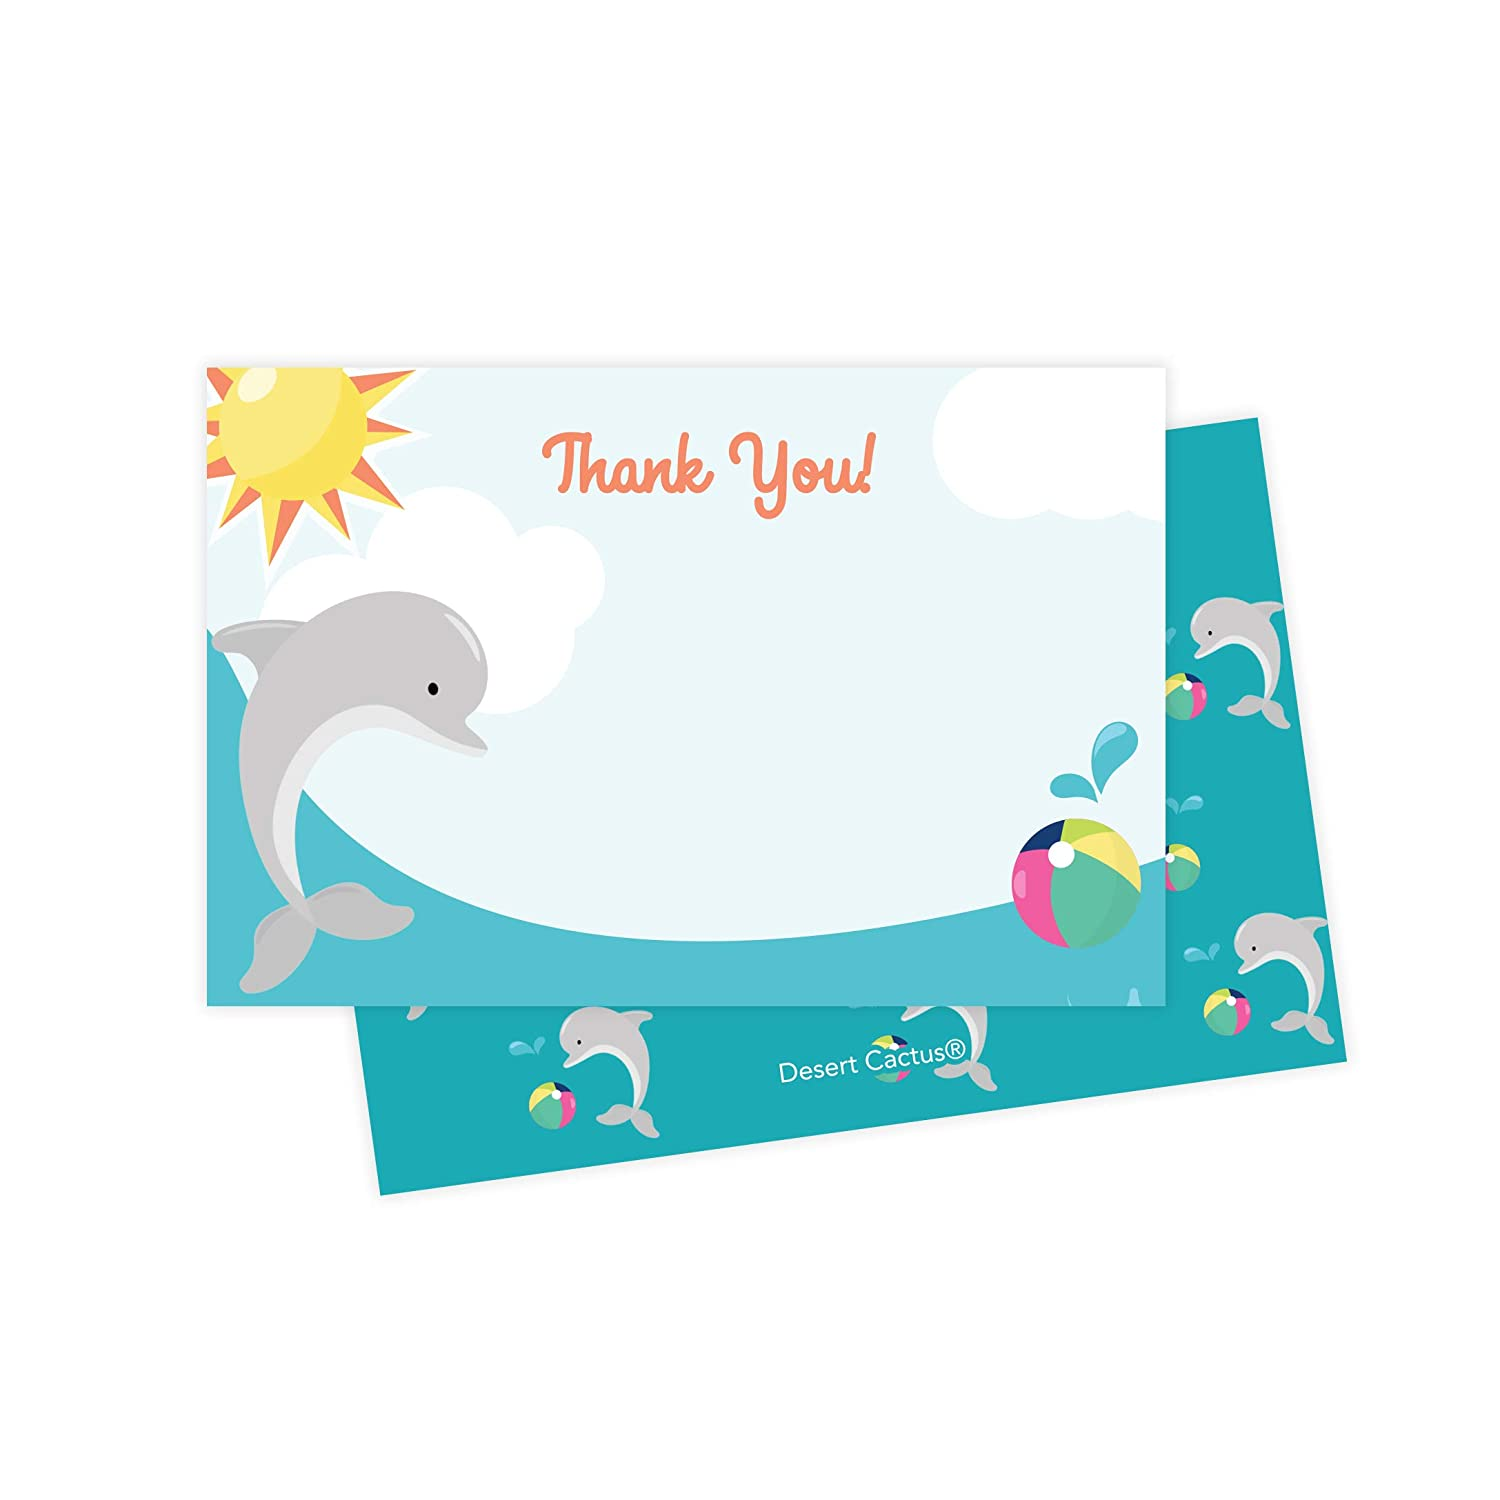 Dolphins Thank You Cards 25 Count With Envelopes Seal Stickers Bulk Birthday Party Bridal Blank Graduation Kids Children Boy Girl